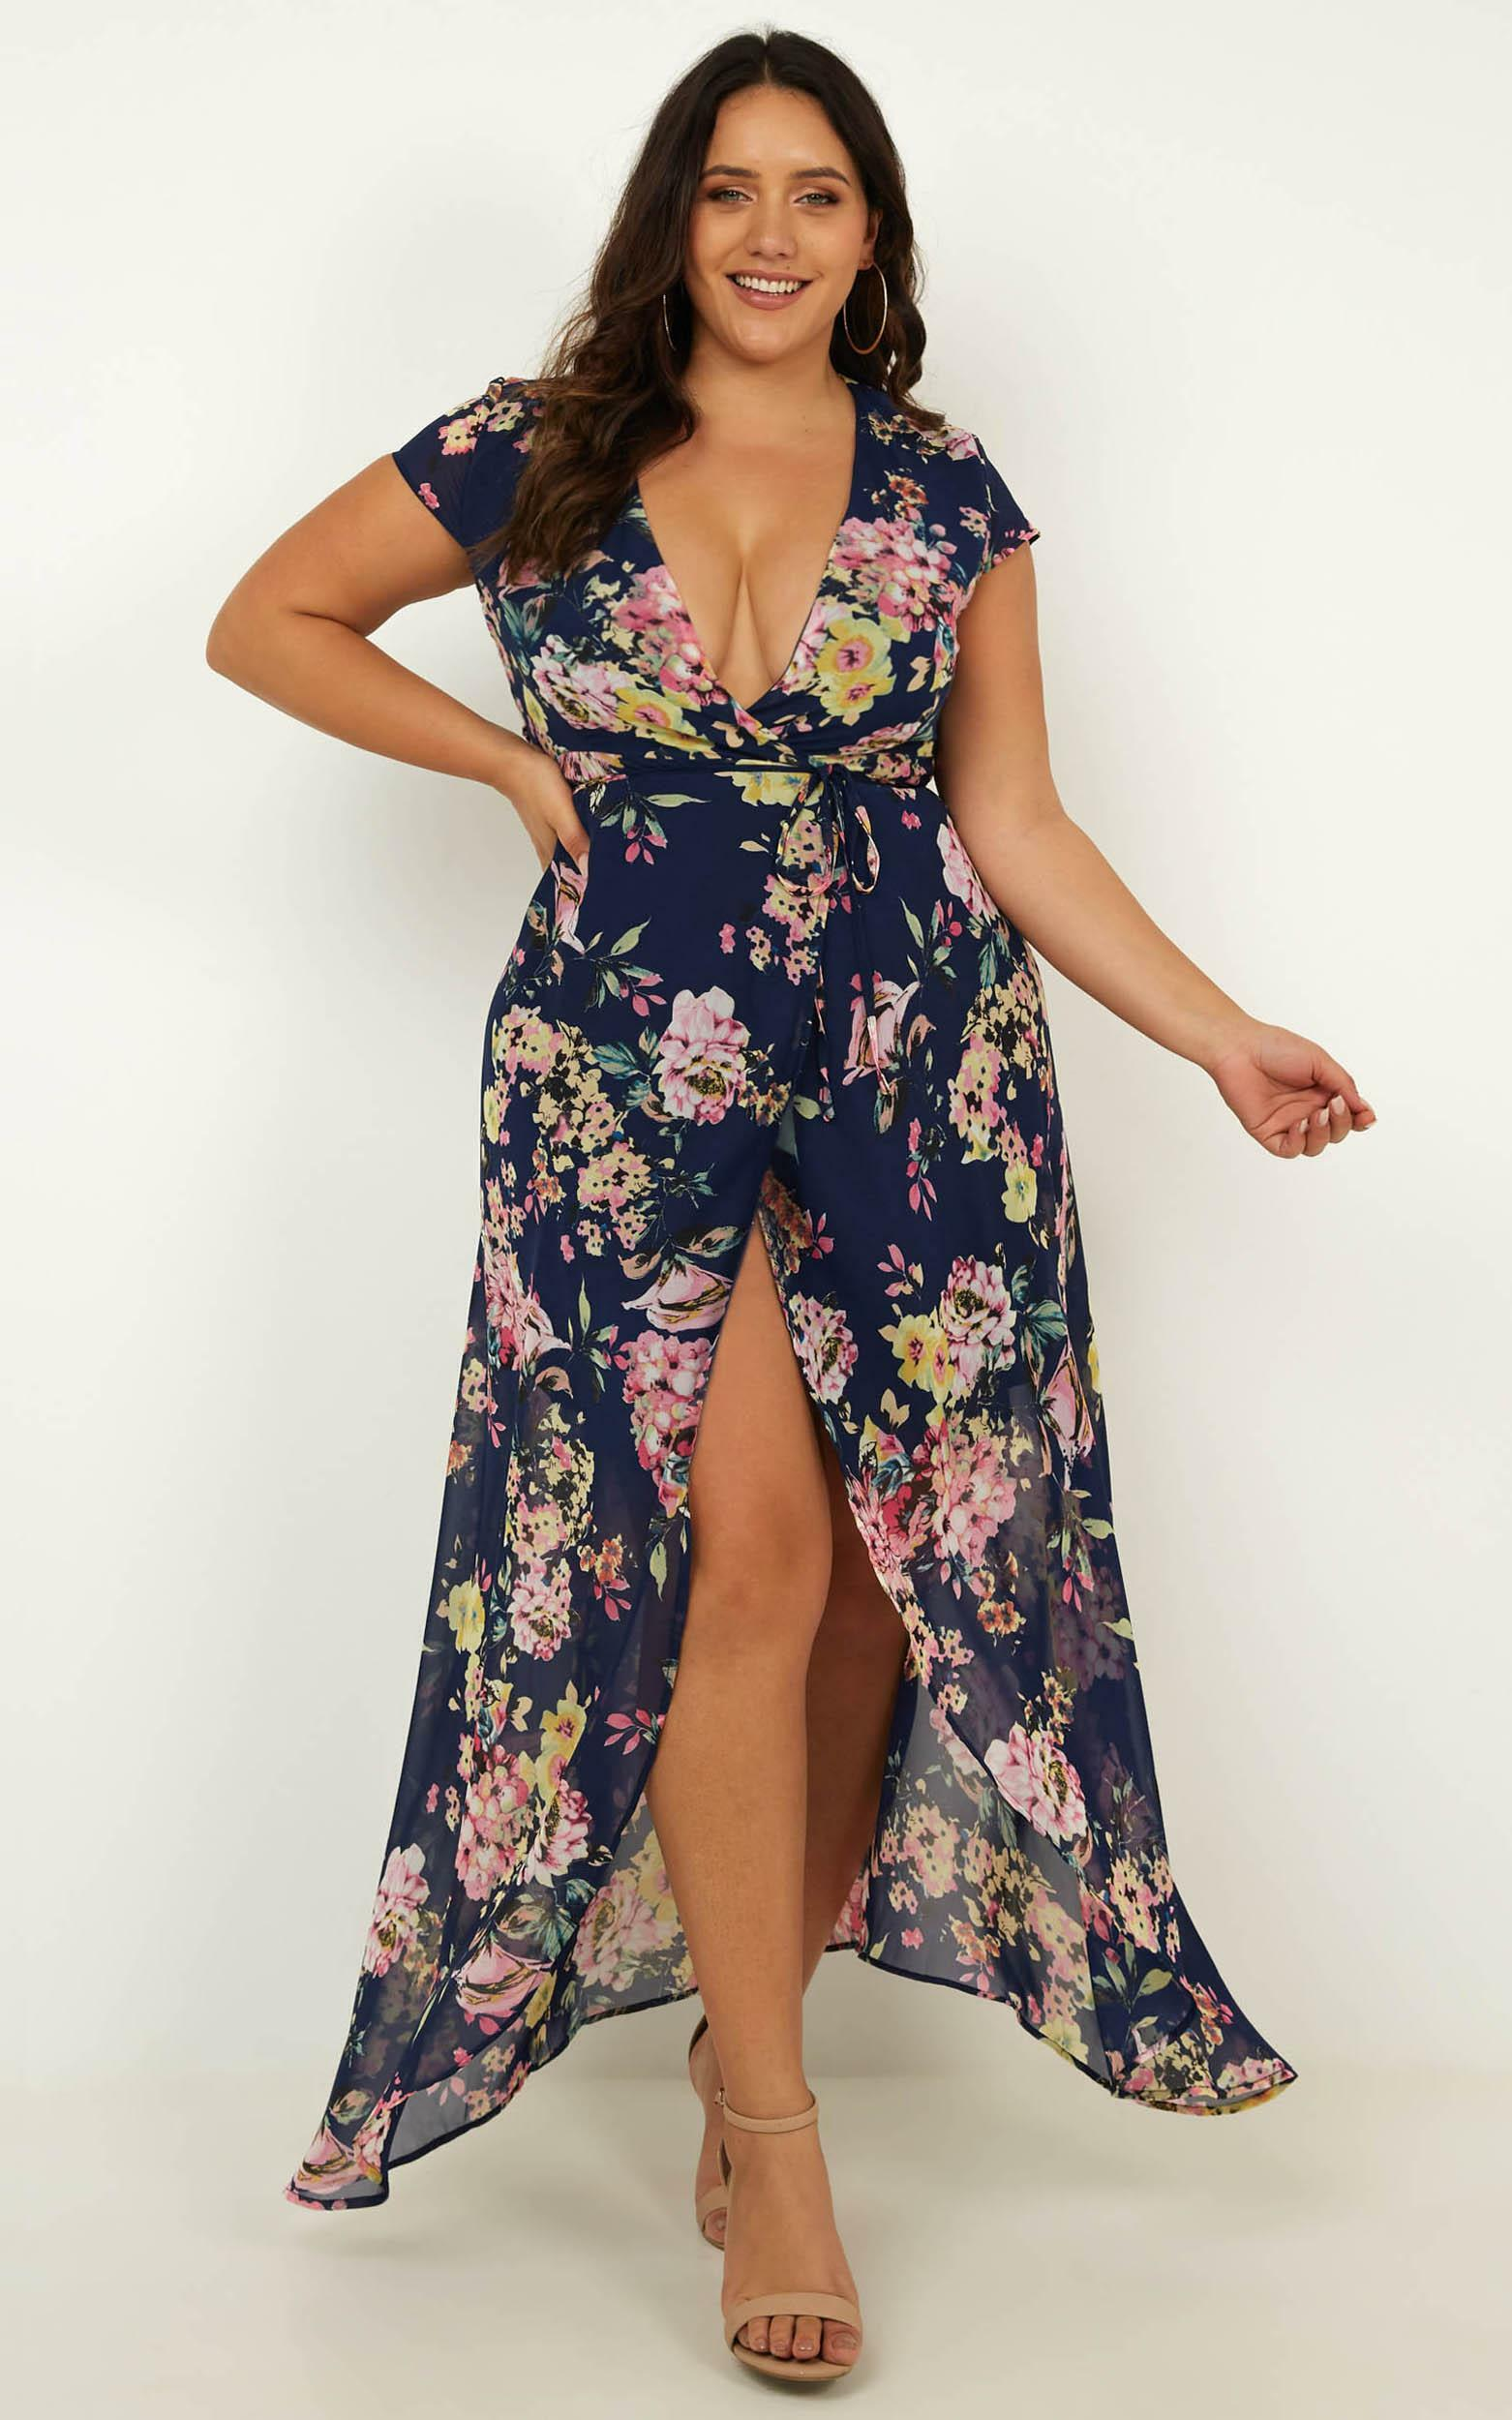 Wrap And Cross Maxi Dress in Navy Floral - 6 (XS), NVY1, hi-res image number null